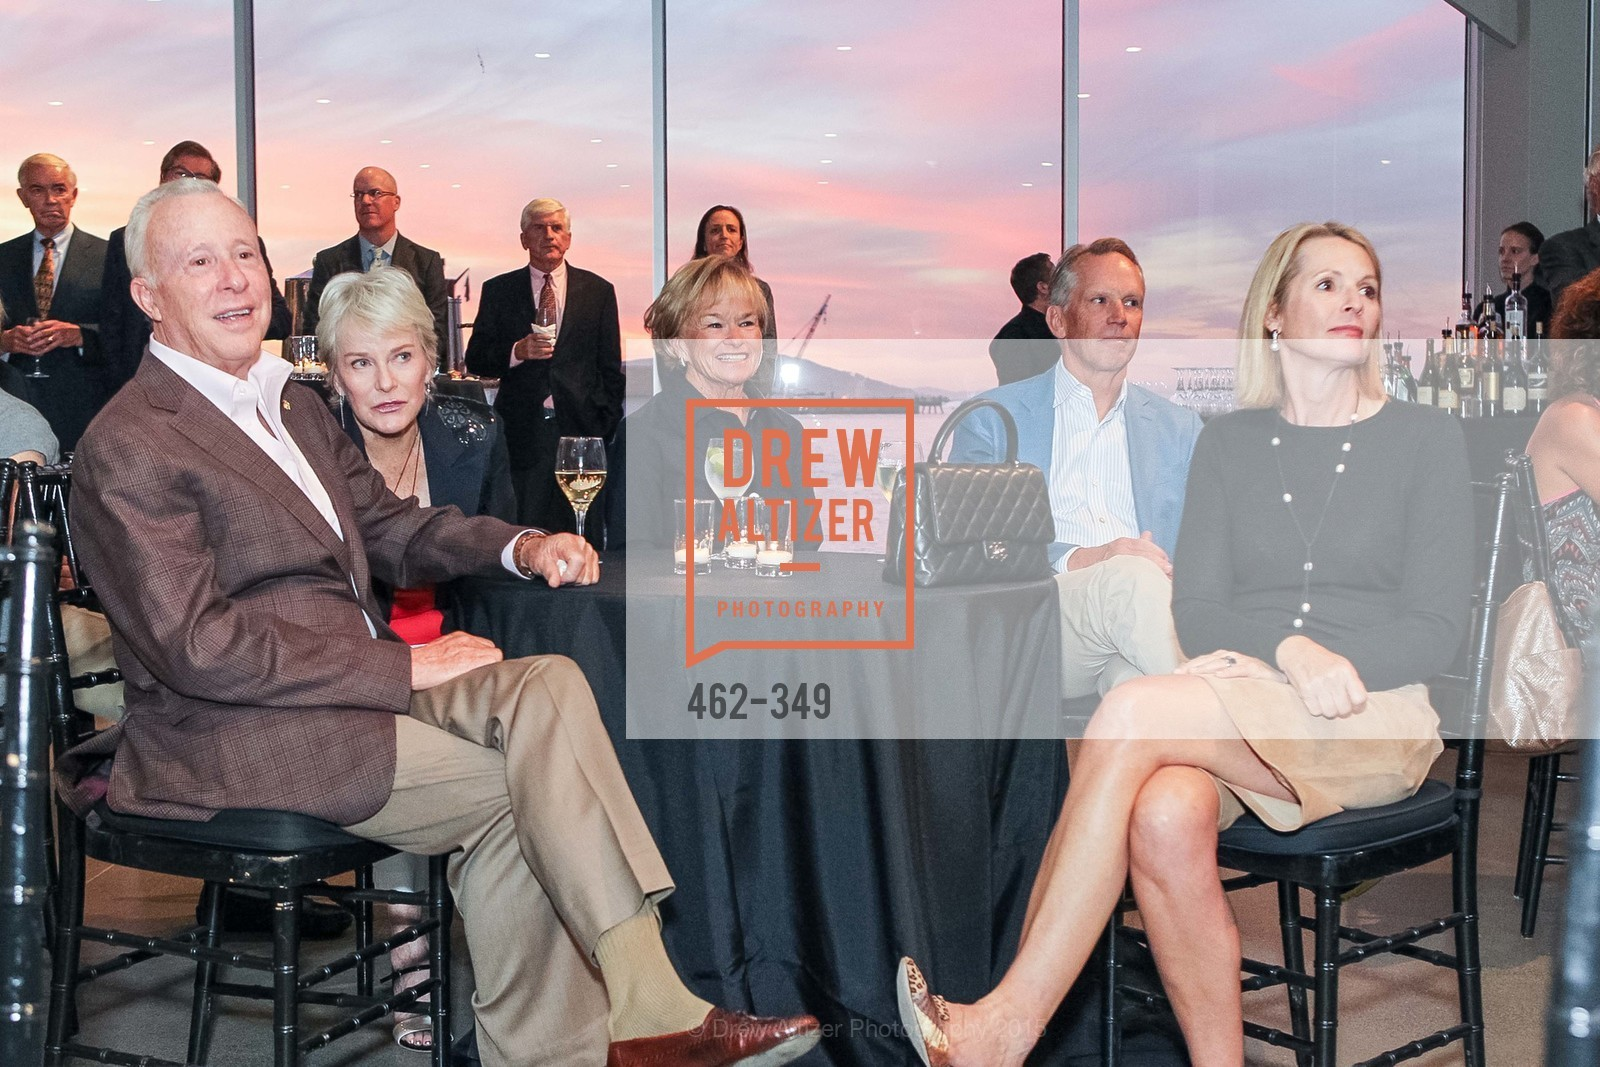 Stephen Doyle, April Doyle, Barbara Morris, Jeff Edwards, Vicky Edwards, Cocktails on the Pier- A BASIC Fund Thank You, Pier 24 Photography. 24 Pier The Embarcadero, October 8th, 2015,Drew Altizer, Drew Altizer Photography, full-service agency, private events, San Francisco photographer, photographer california